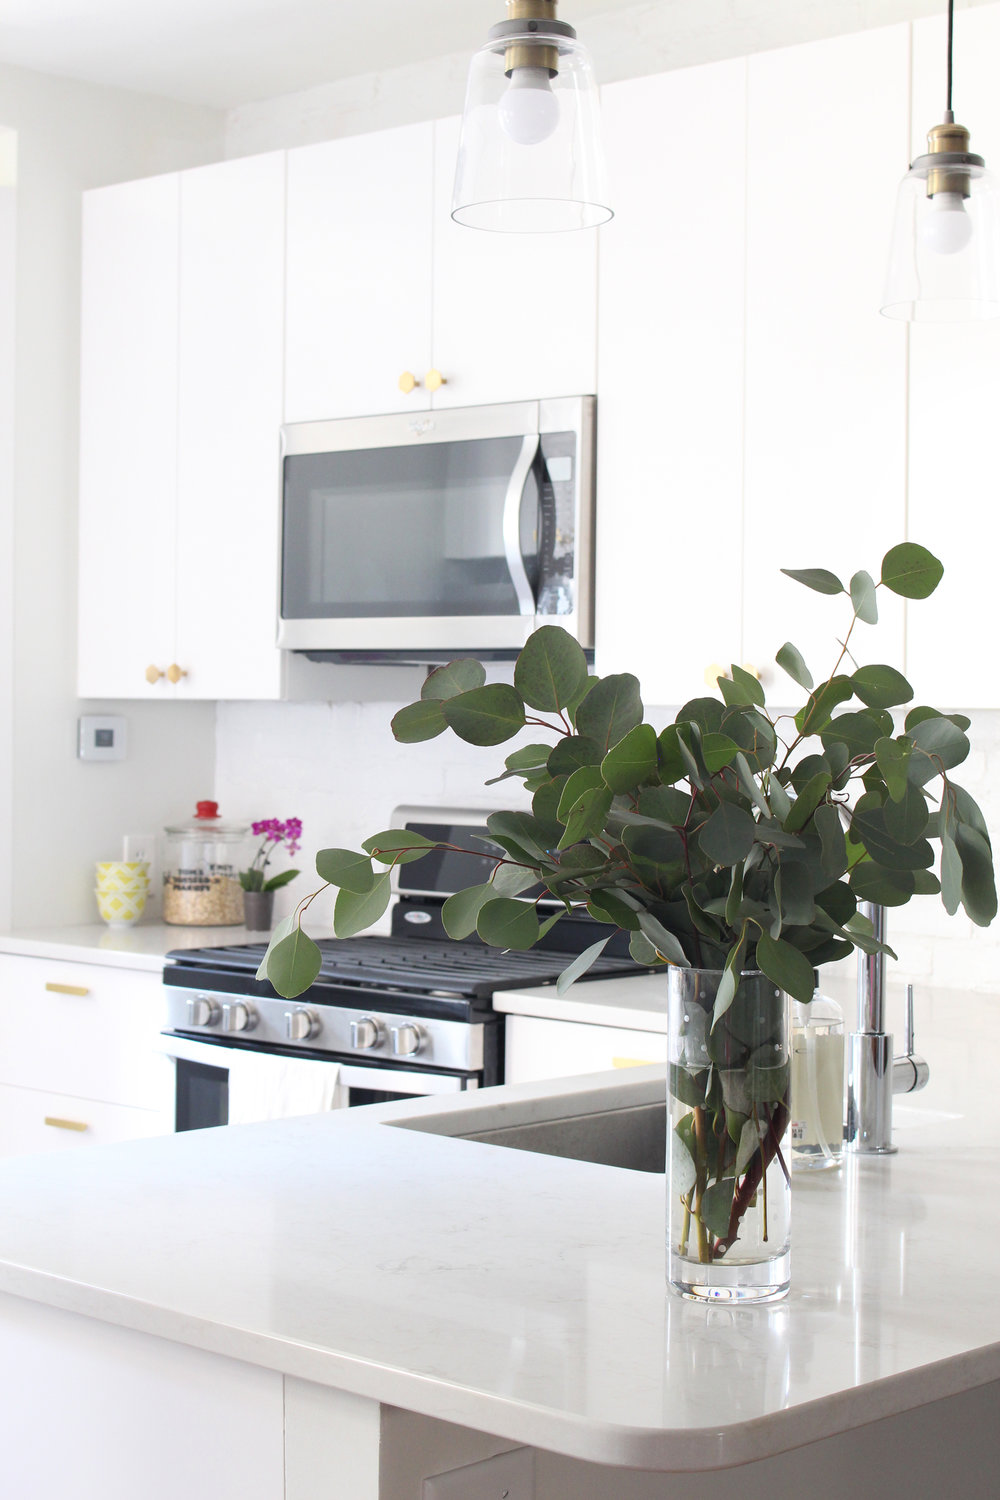 Modern-White-Kitchen-Renovation-Ikea-Sektion-9.jpg